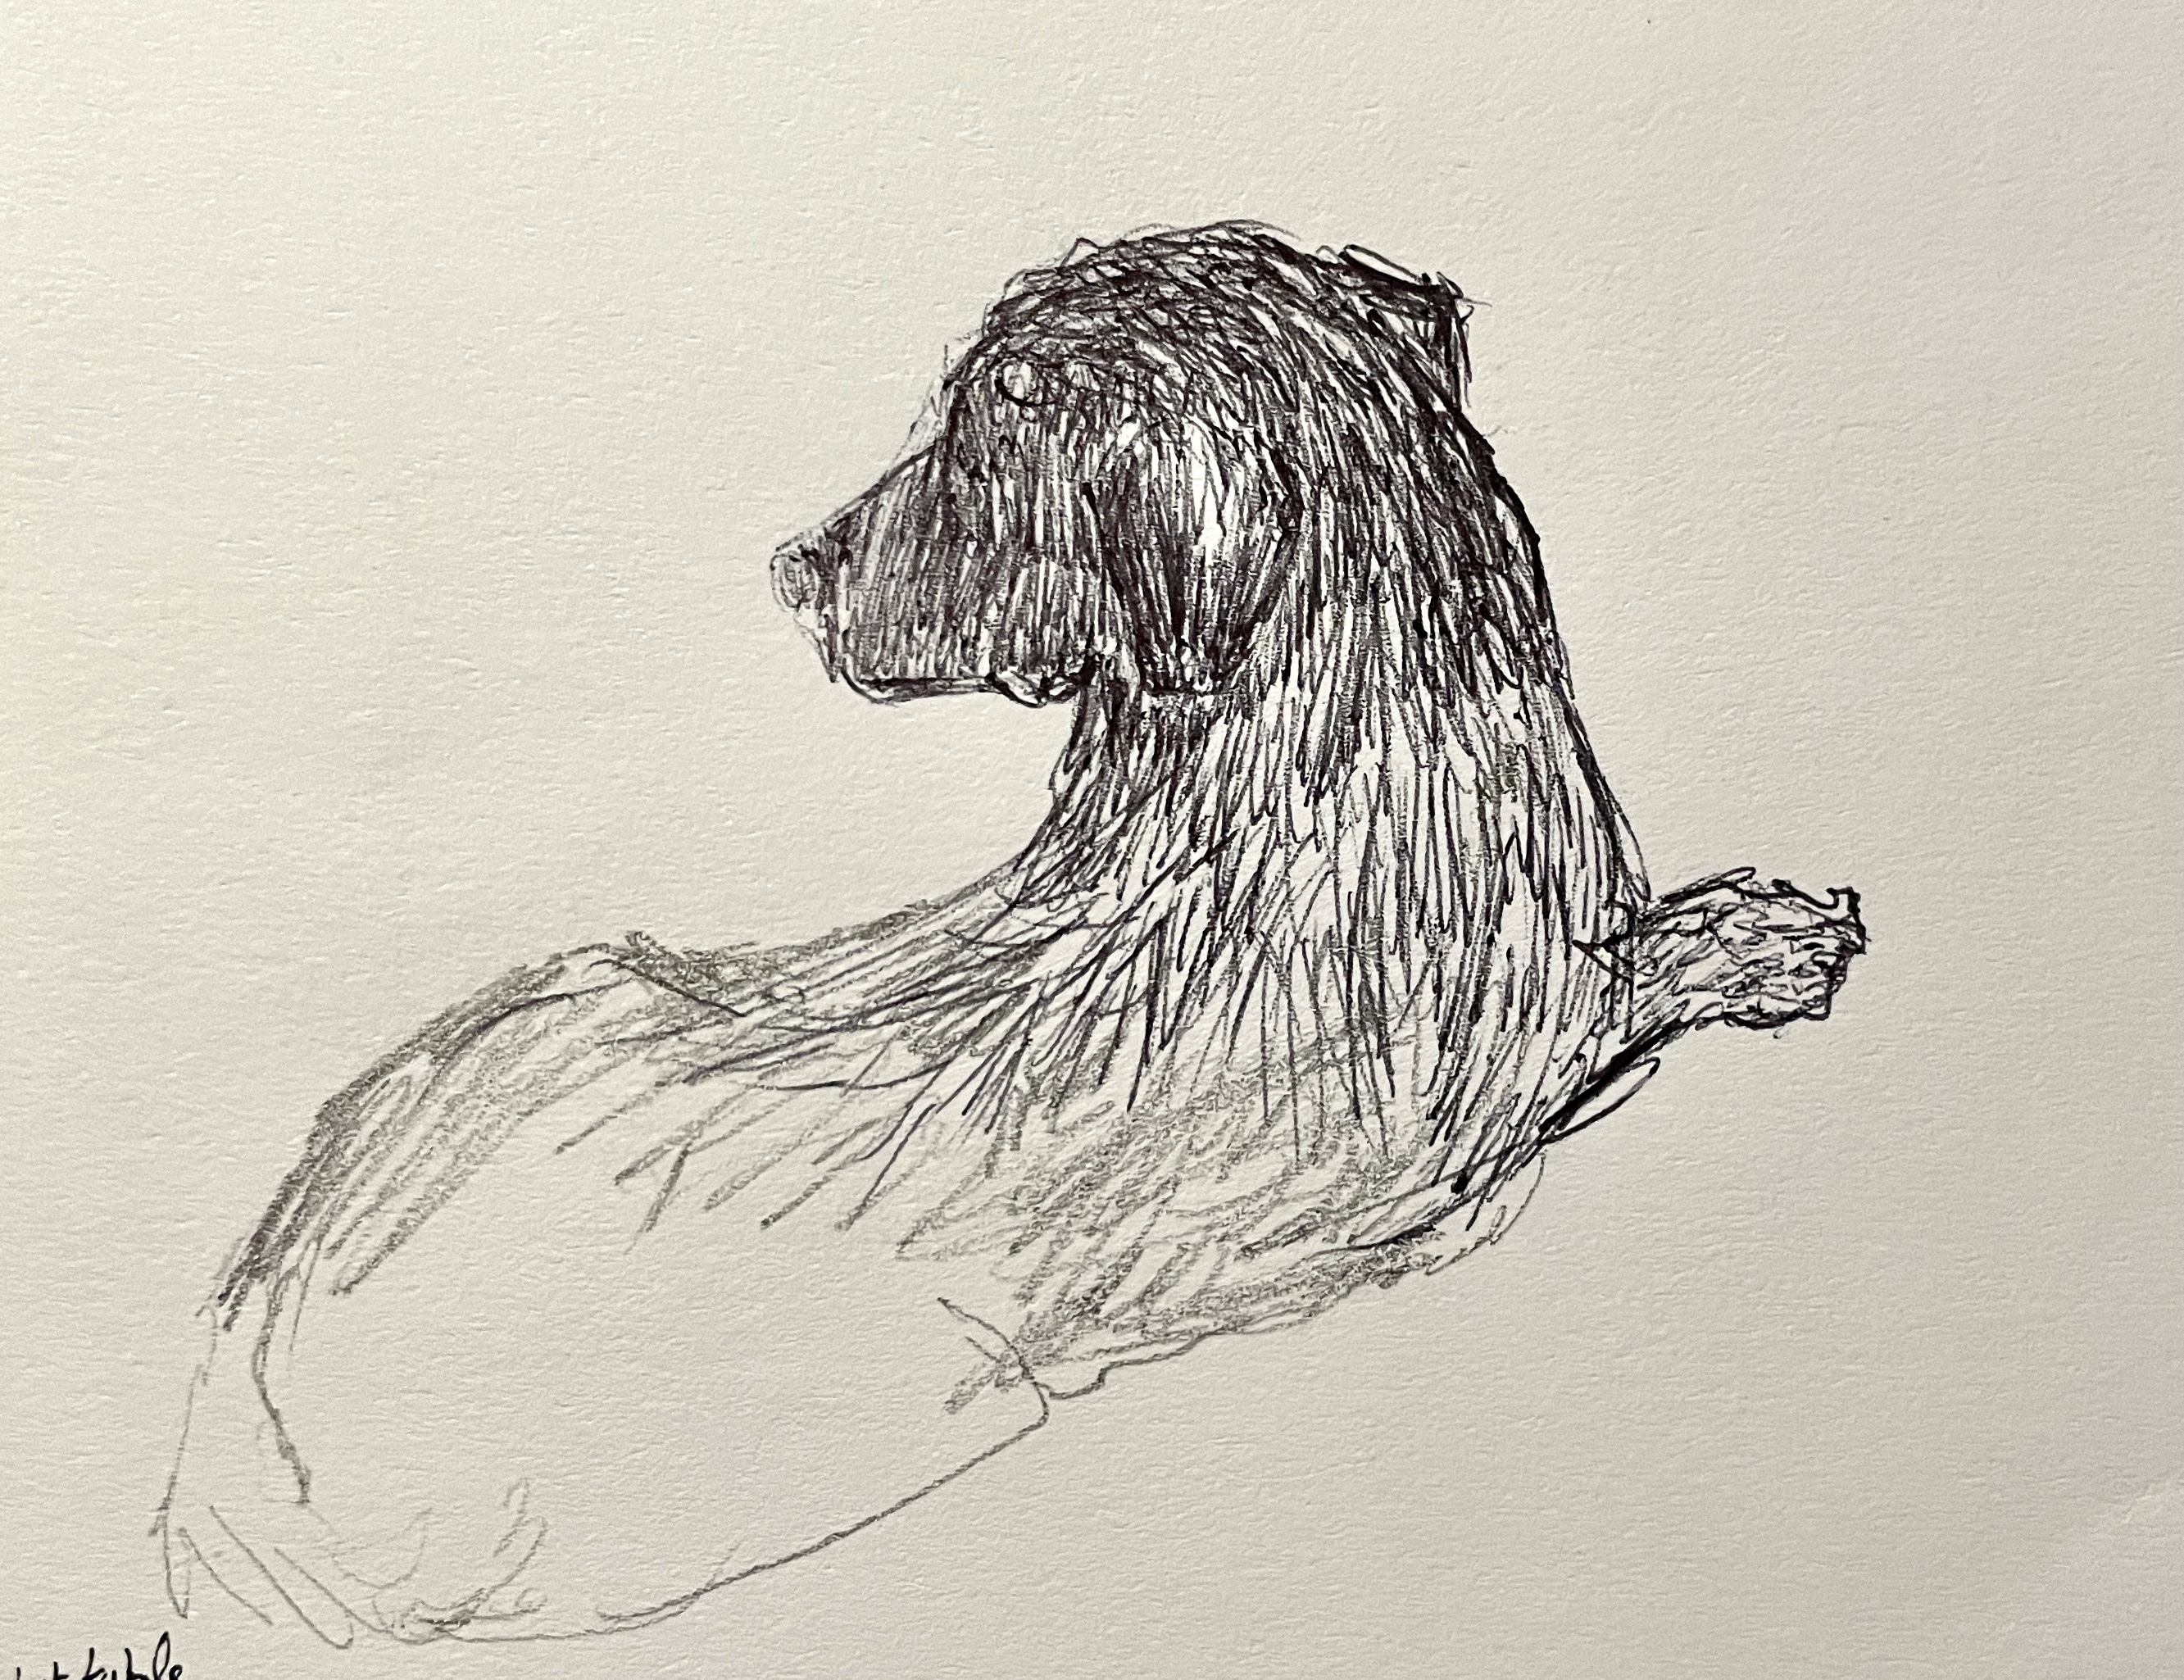 unfinished sketch of dog - Whitstable